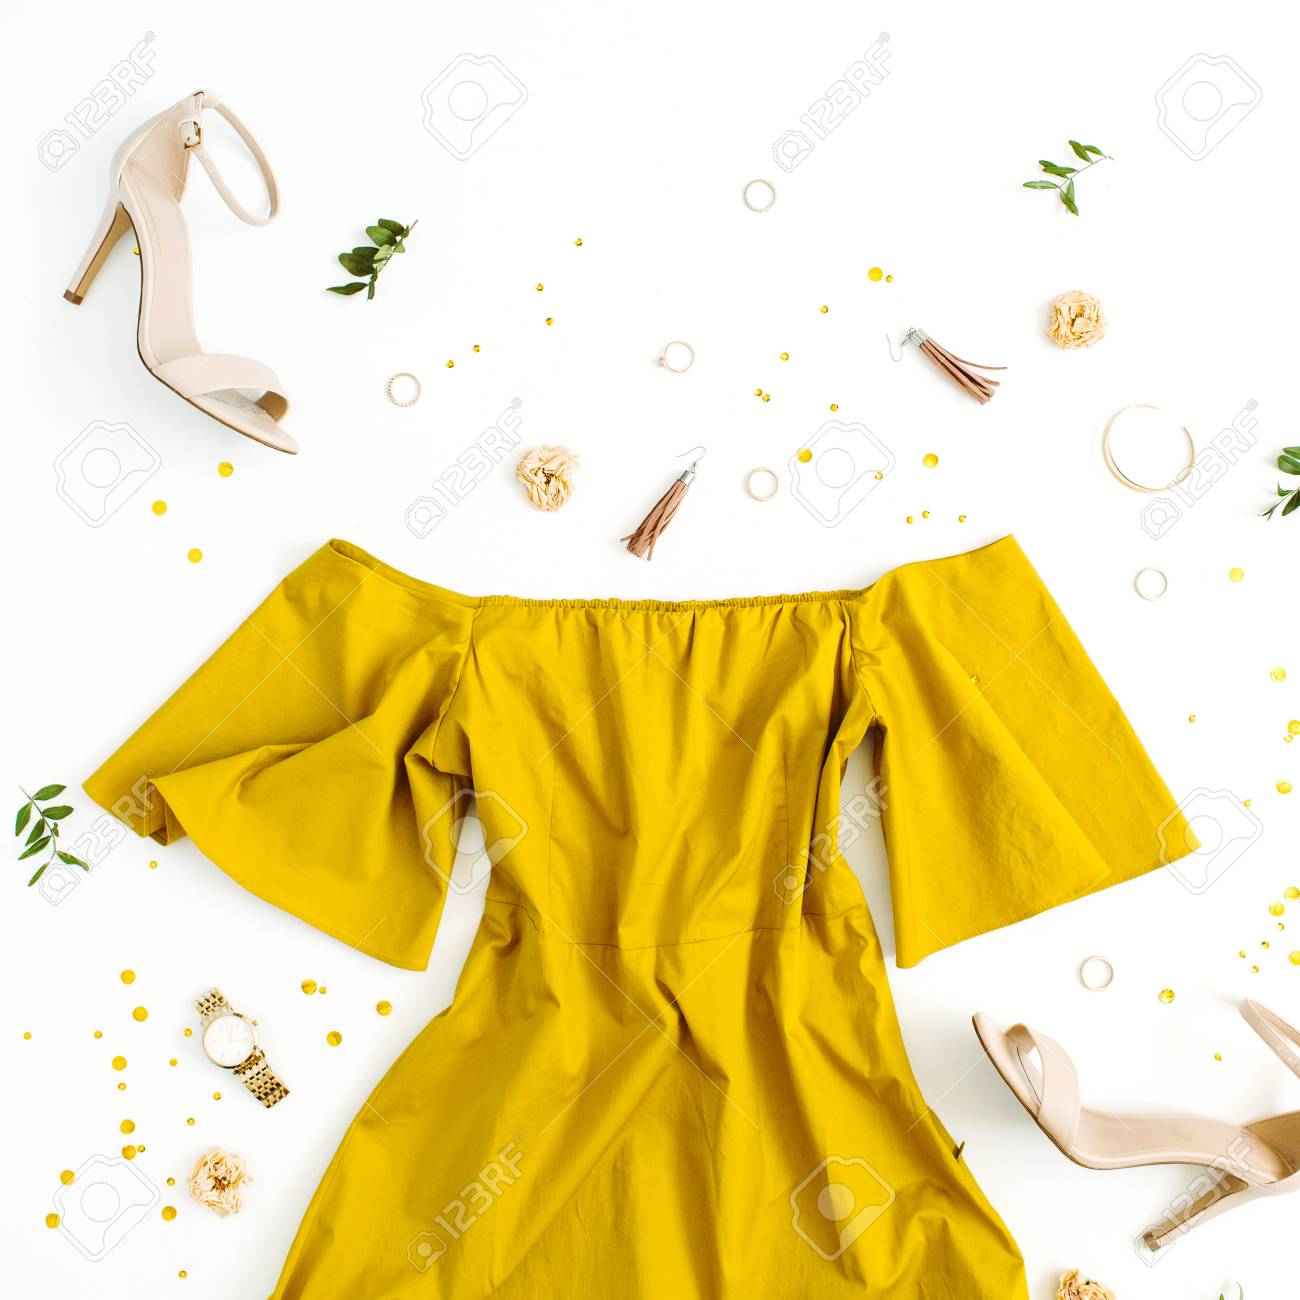 Women's fashion clothes and accessories on white background